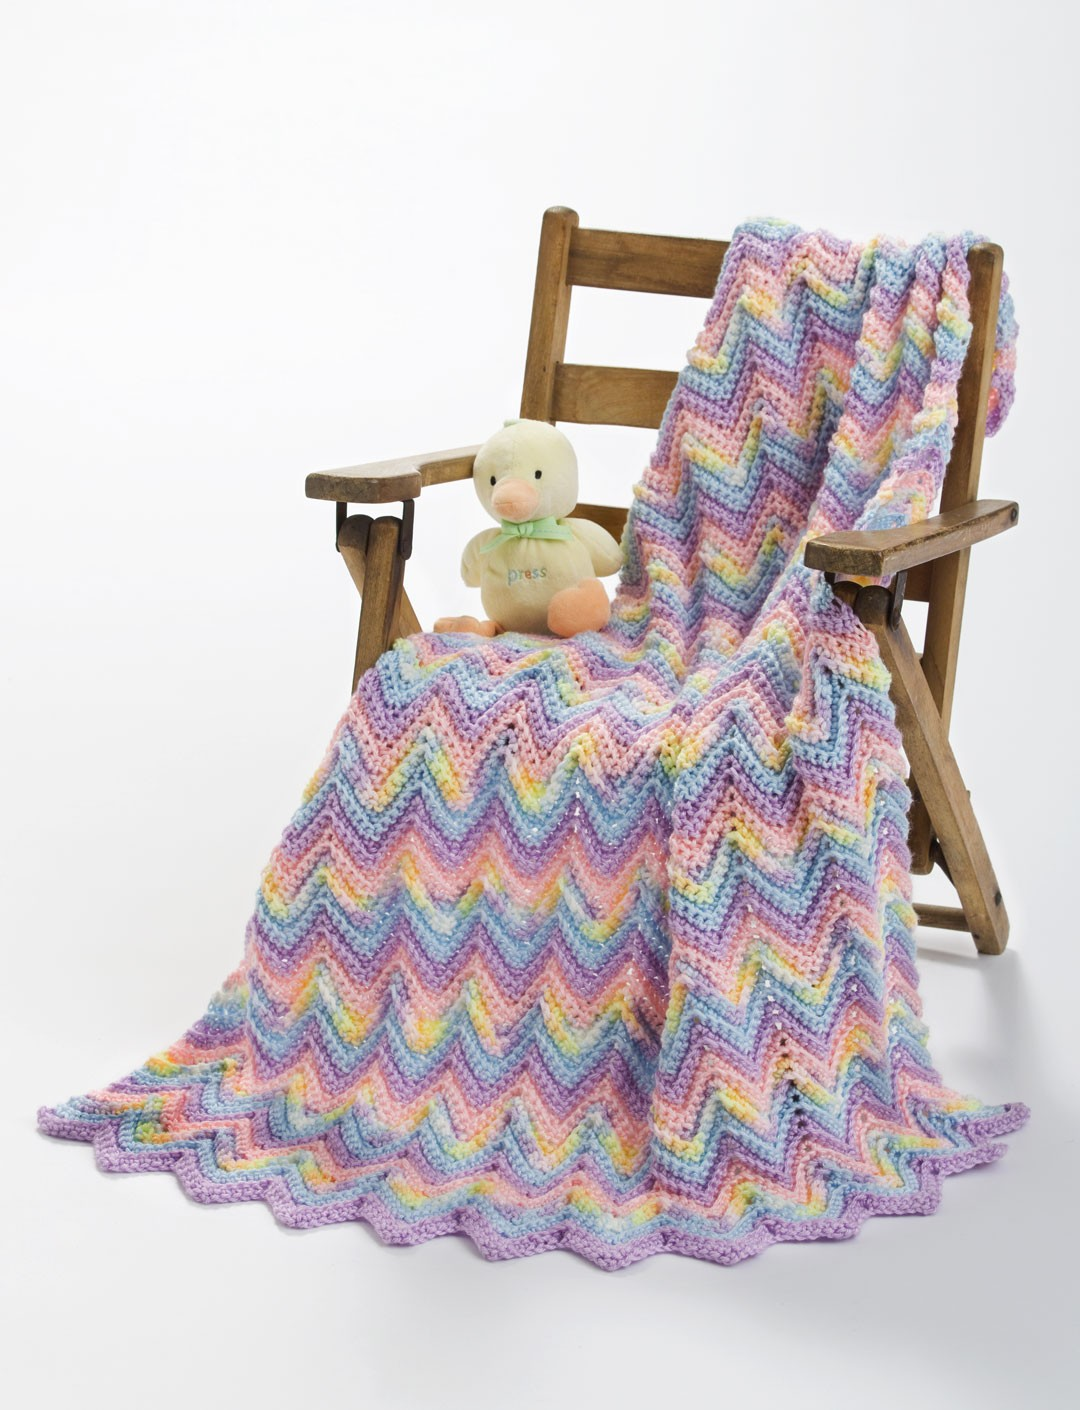 Crocheting Or Knitting : Caron Knit or Crochet Ripple Baby Blanket, Crochet Pattern ...